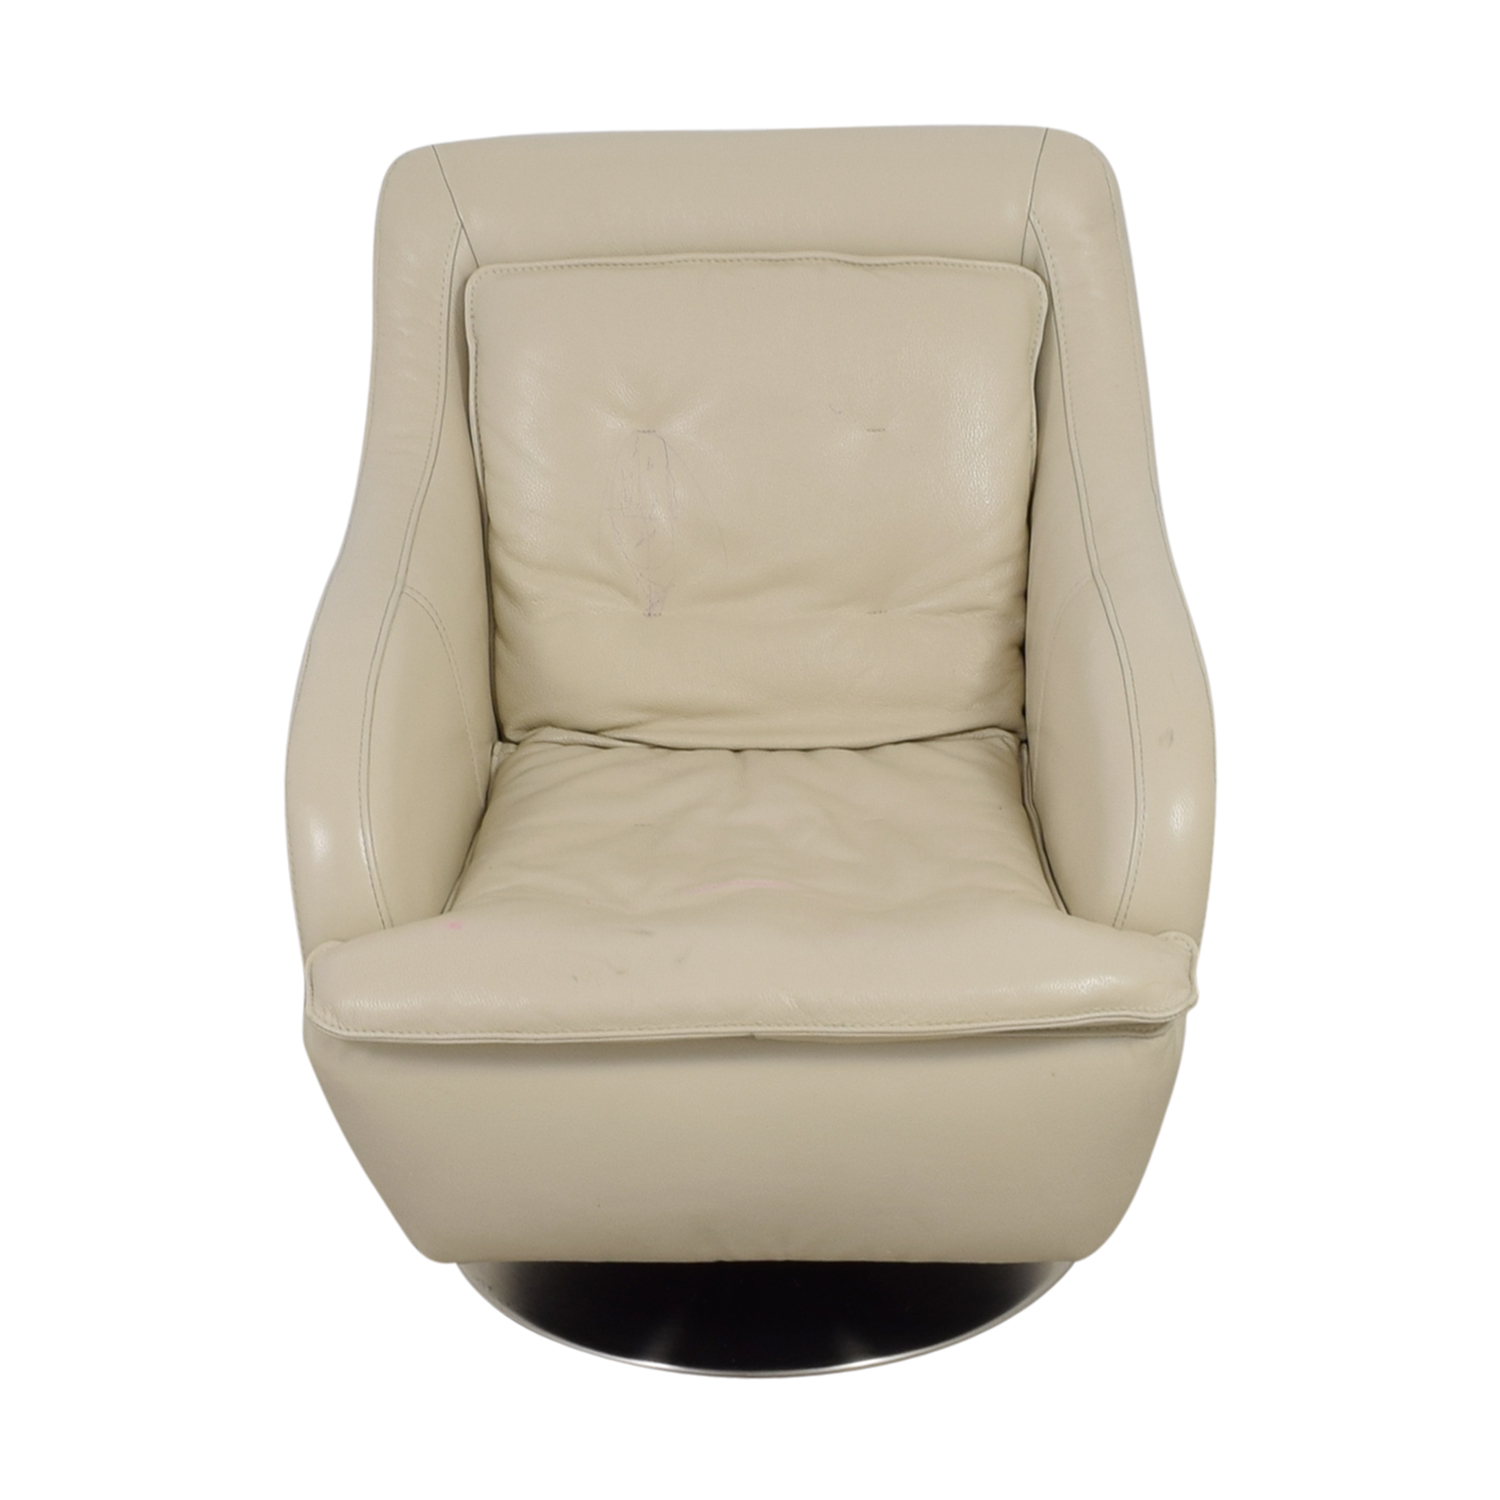 Raymour & Flanigan Raymour & Flanigan White Leather Accent Chair used